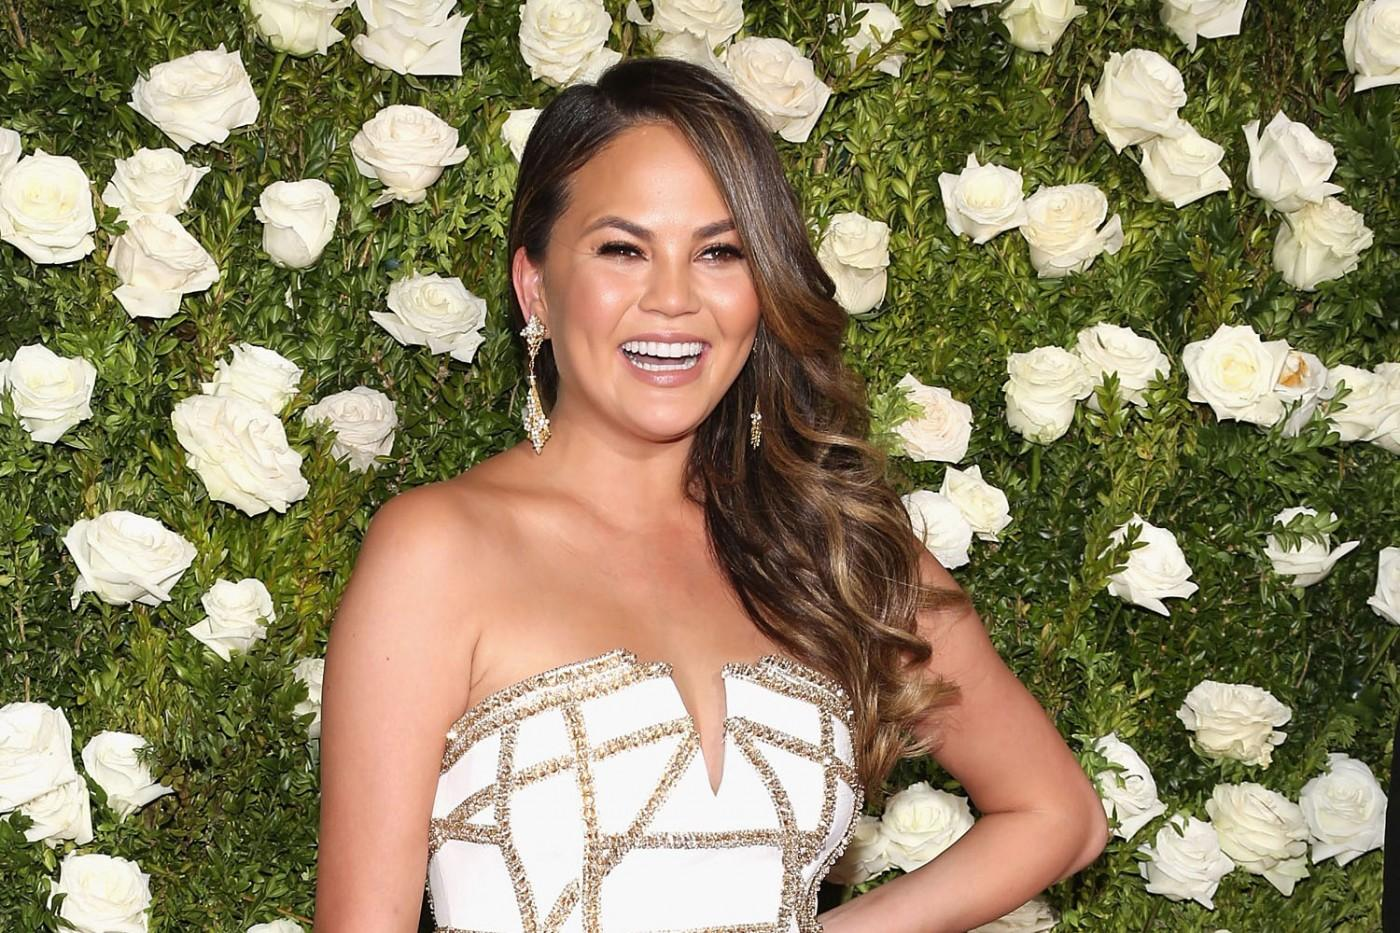 Fans Rally For Chrissy Teigen After Food Writer's Harsh Critique